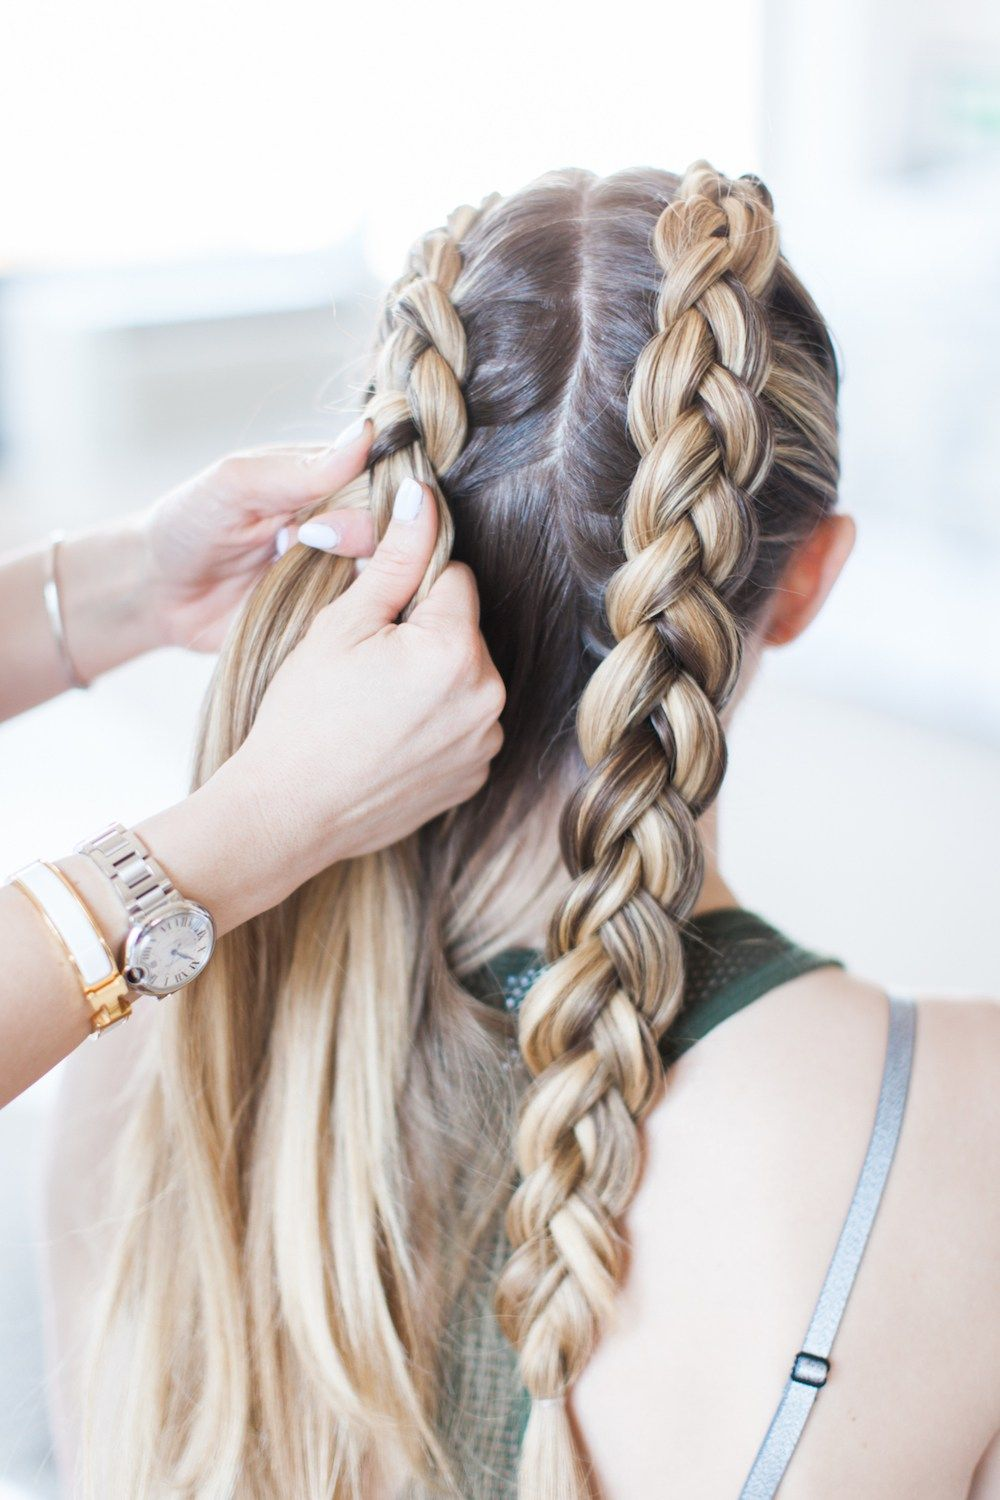 master these double dutch braids in 3 steps & less than 5 minutes